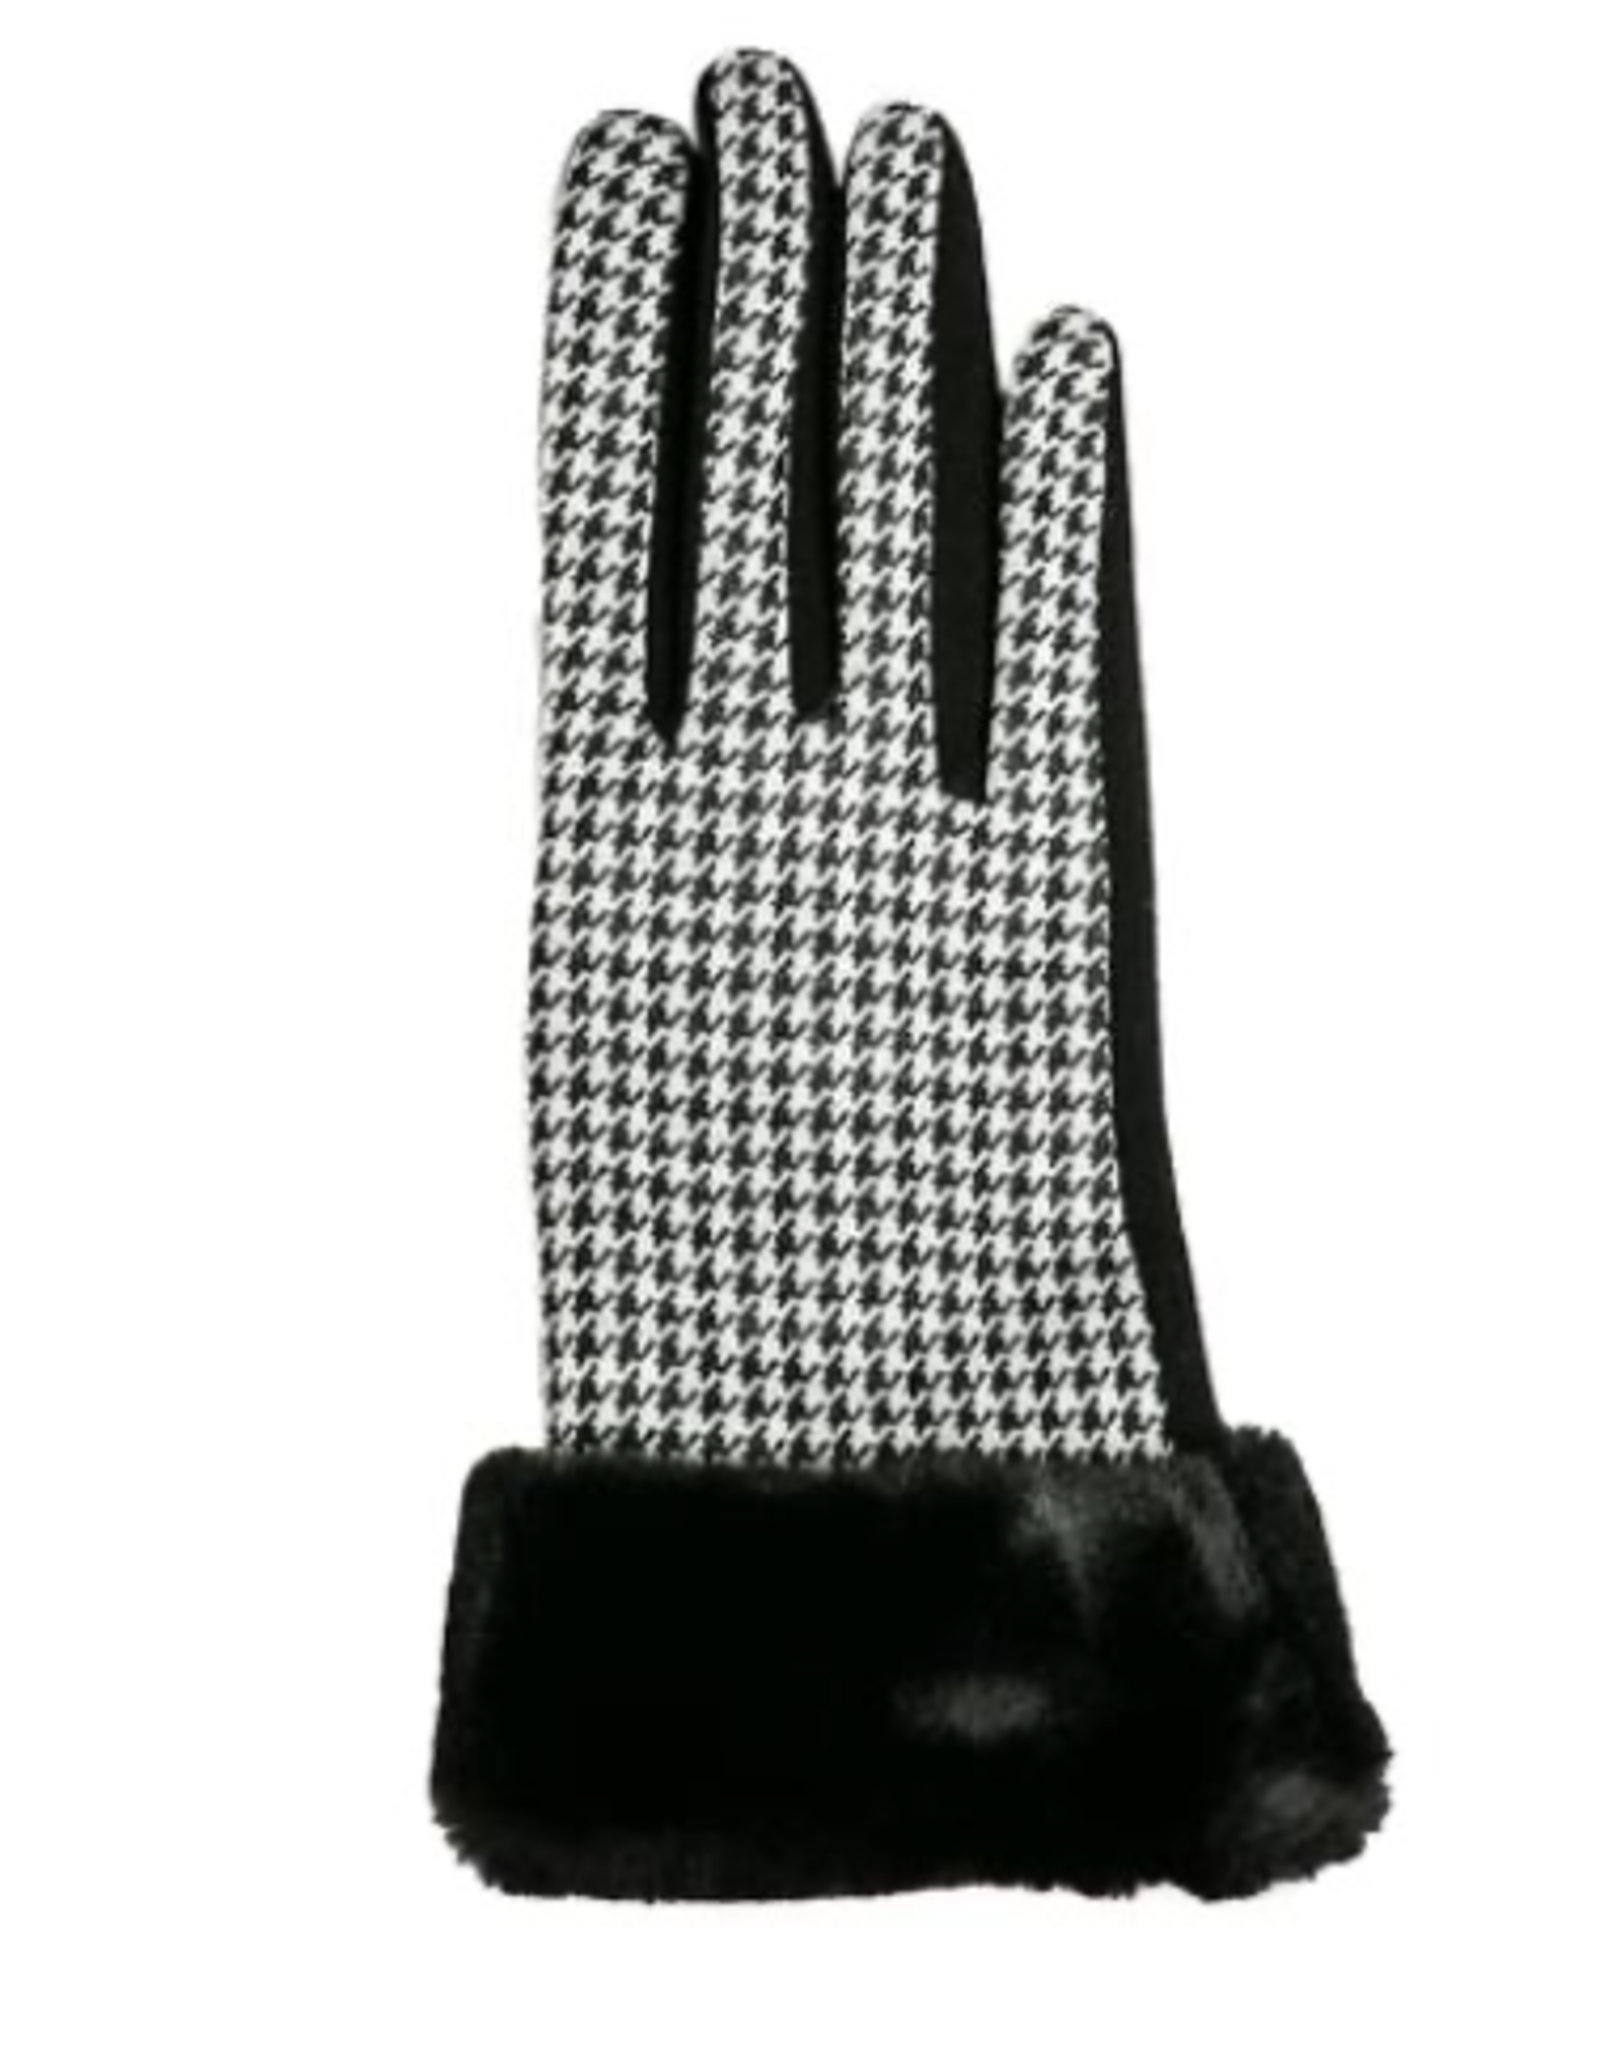 TOP IT OFF Sawyer Gloves - Black & White Houndstooth with Black Cuff